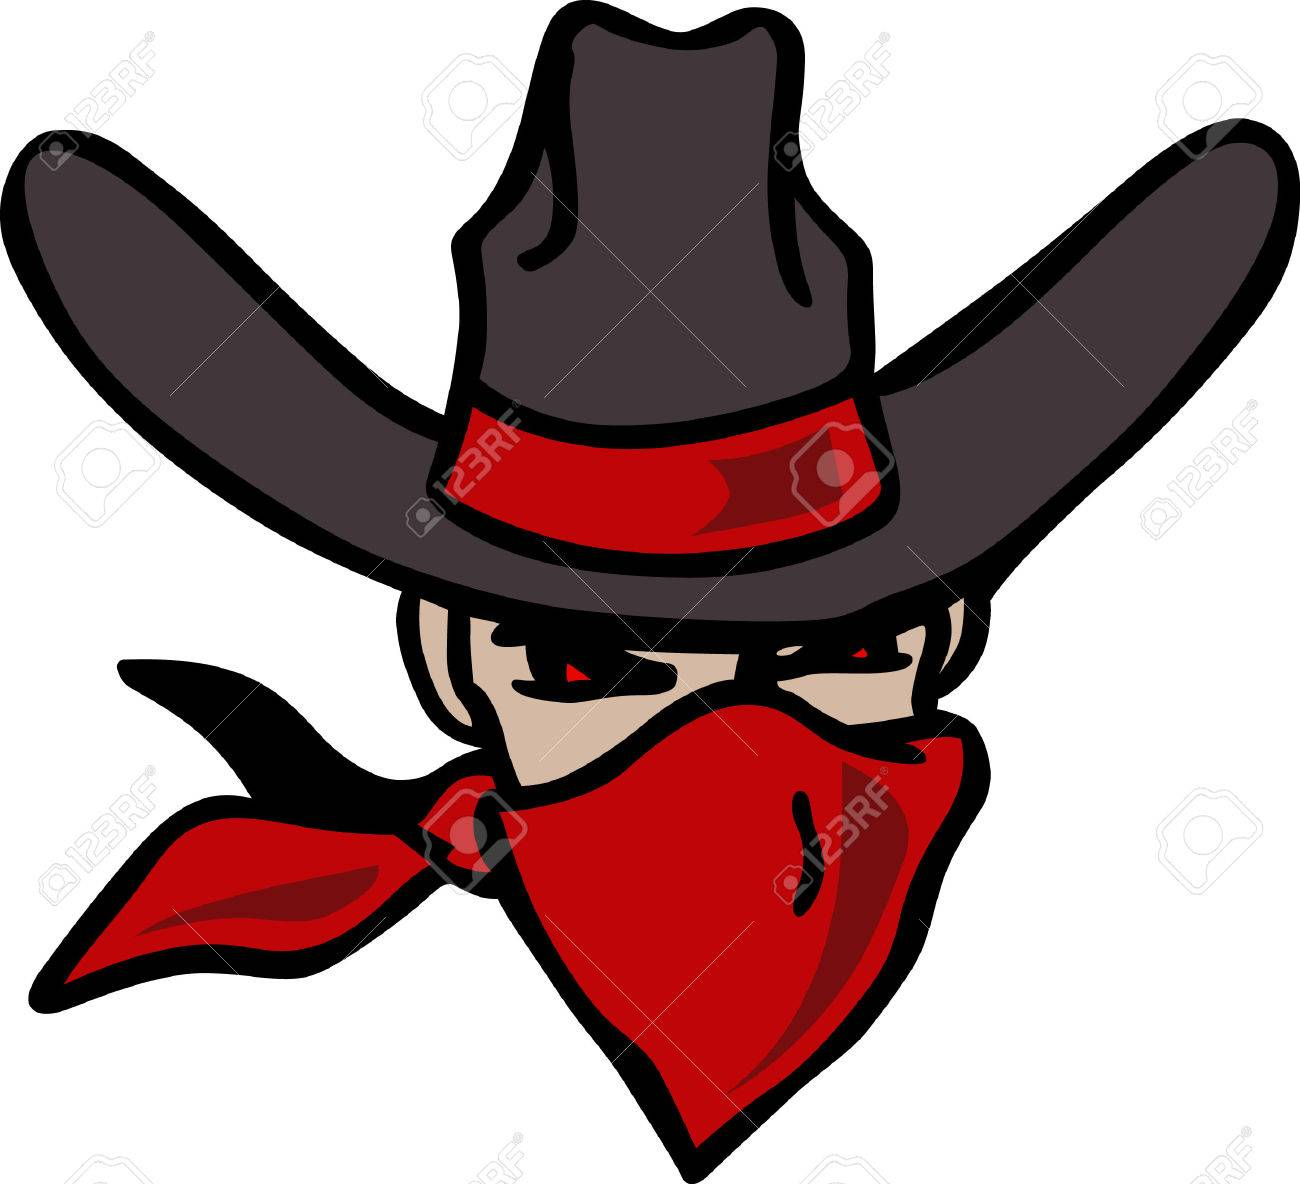 a25c81325c3 The cowboy outlaw is the perfect design for the Rodeo. Stock Vector -  45176655